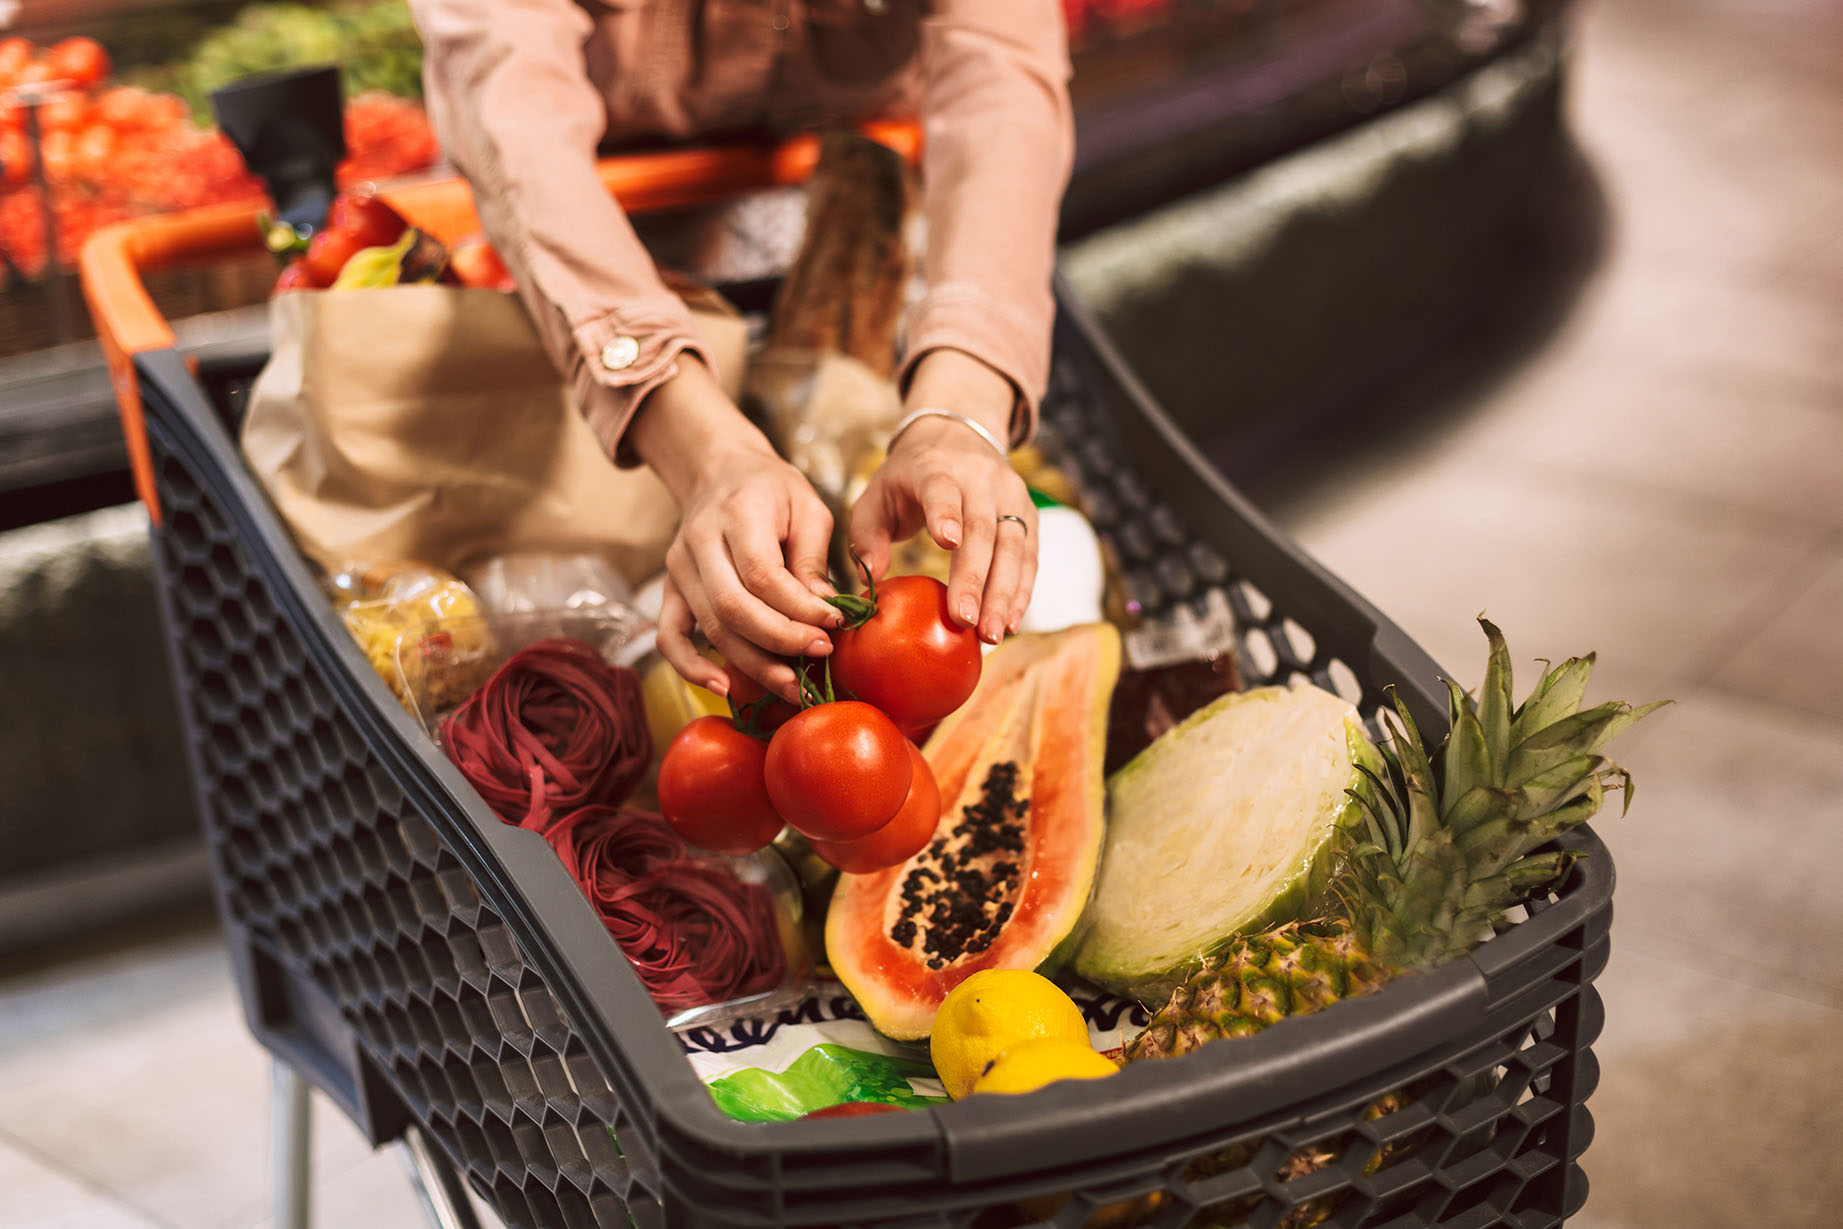 Close up woman hands holding tomatoes in trolley full of fresh